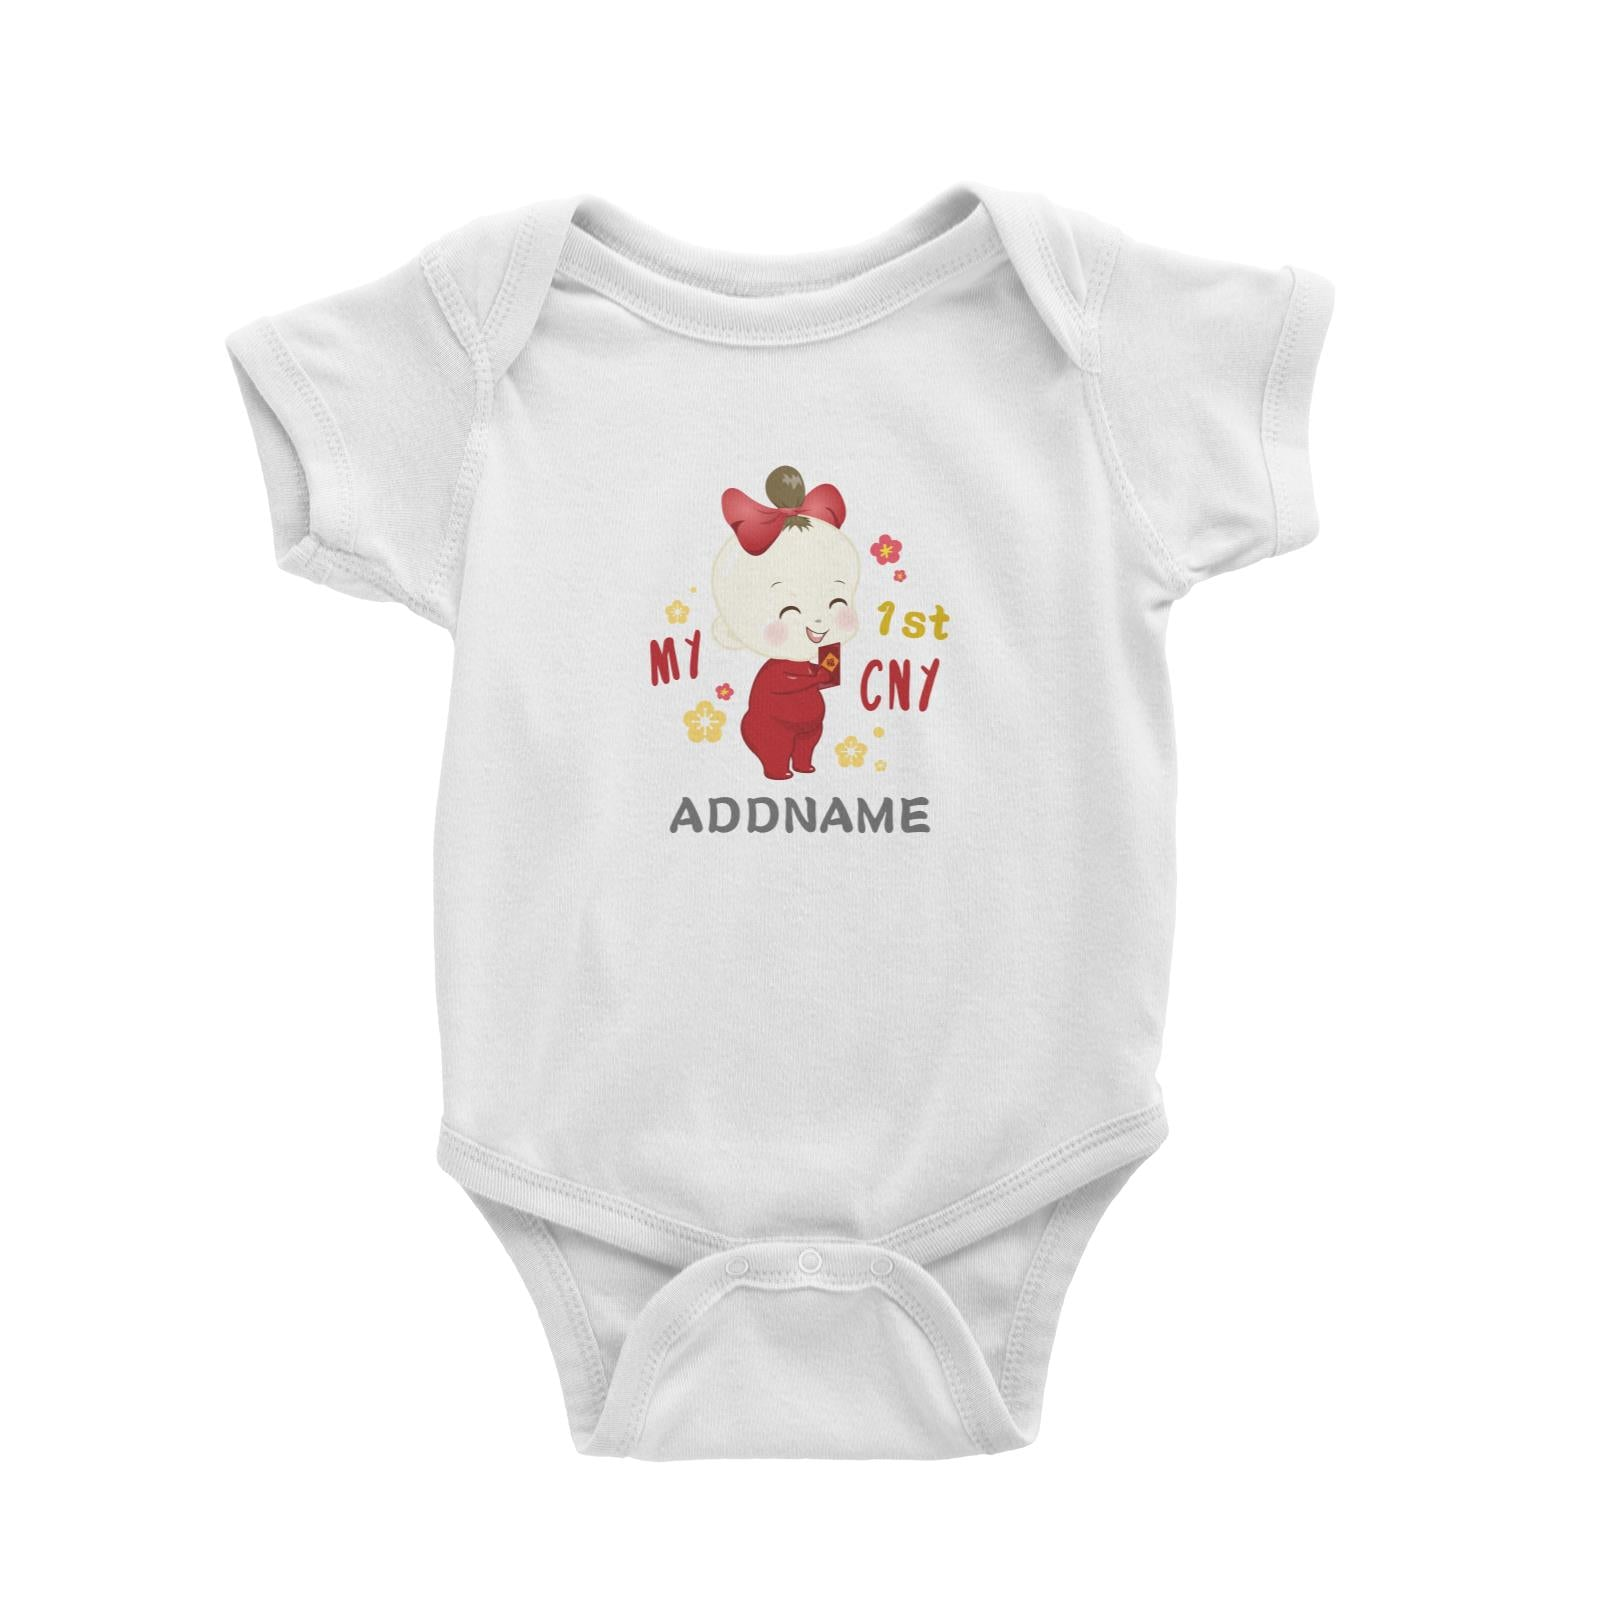 Chinese New Year Family My 1st CNY Baby Girl Addname Baby Romper